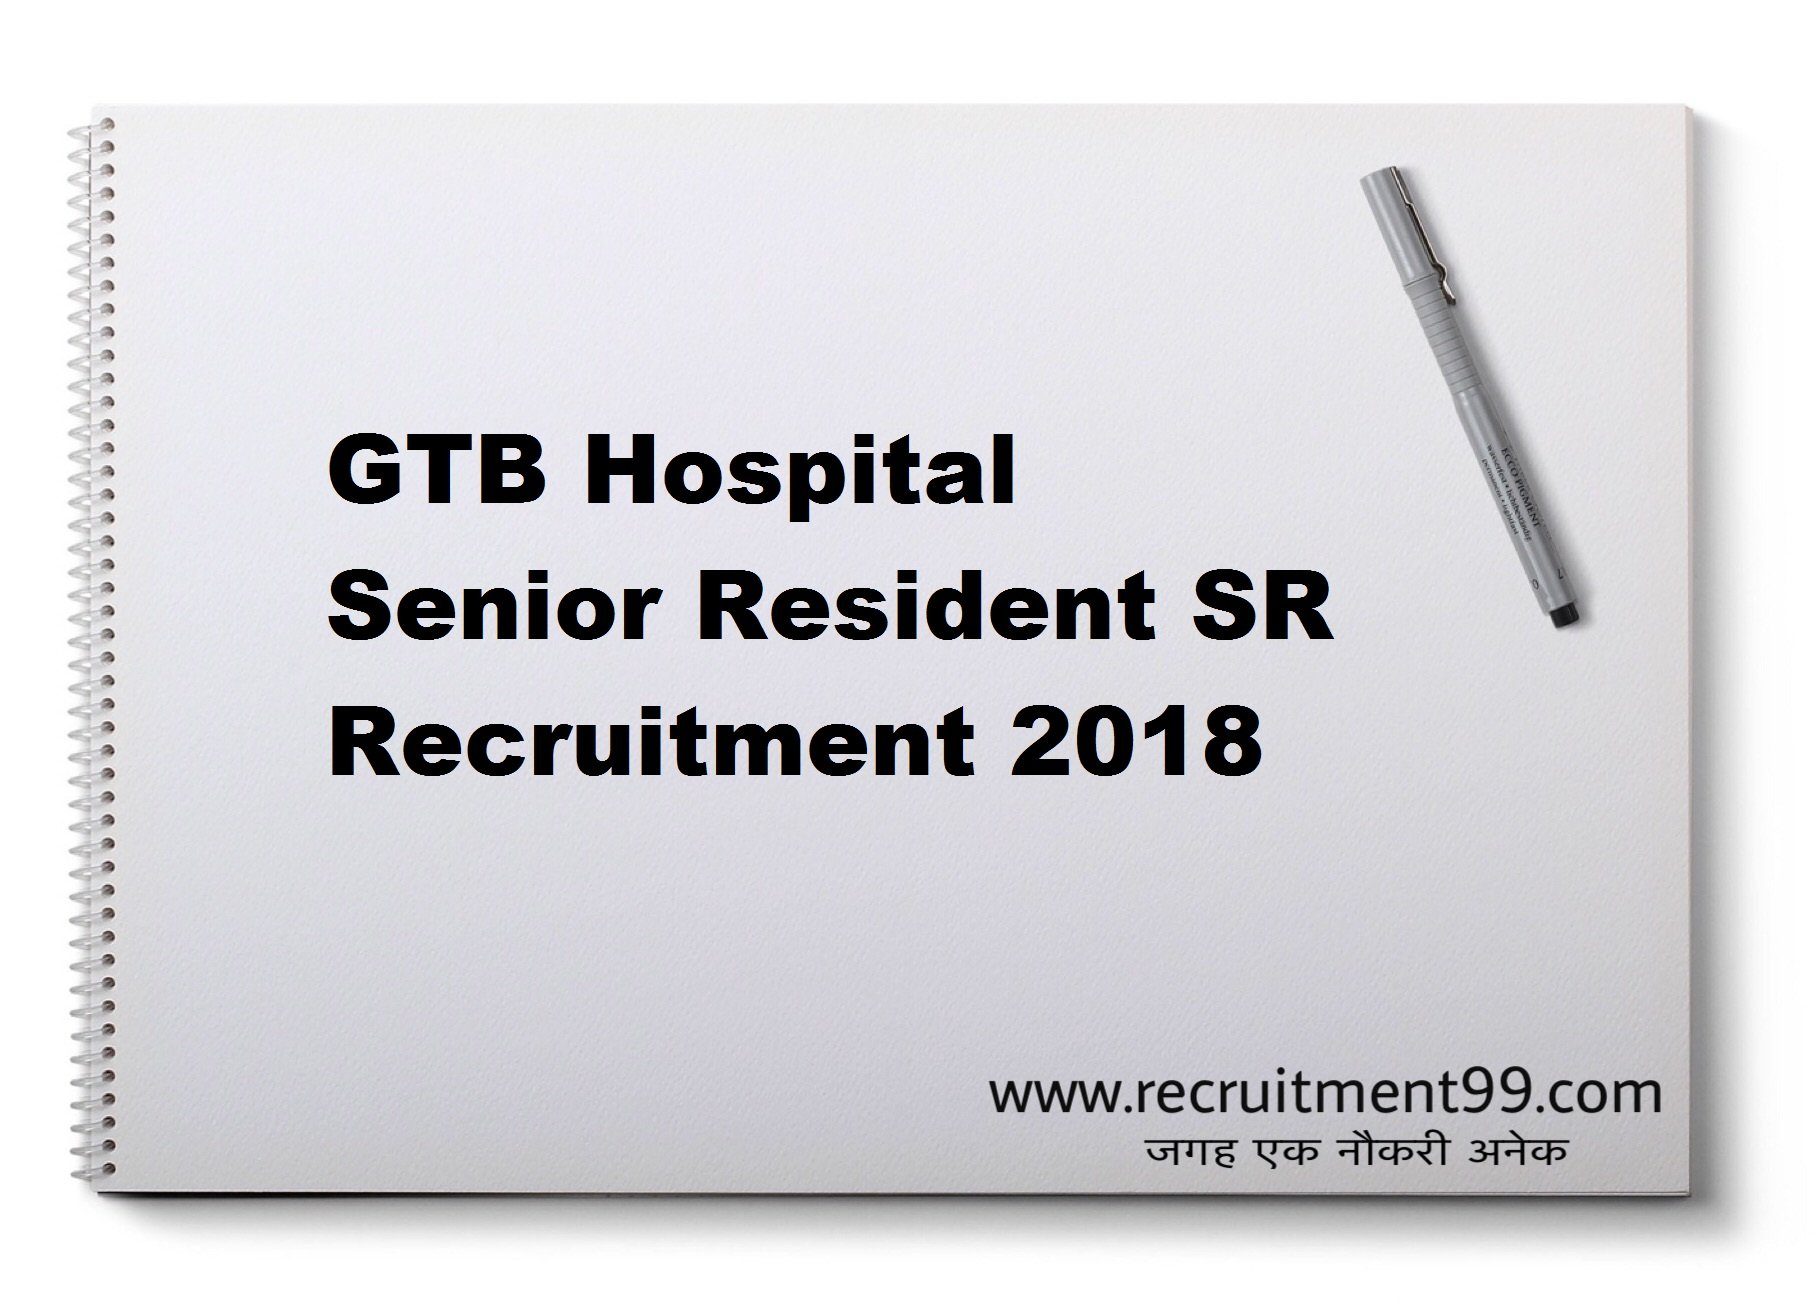 GTB Hospital Senior Resident SR Walk in Interview 2018